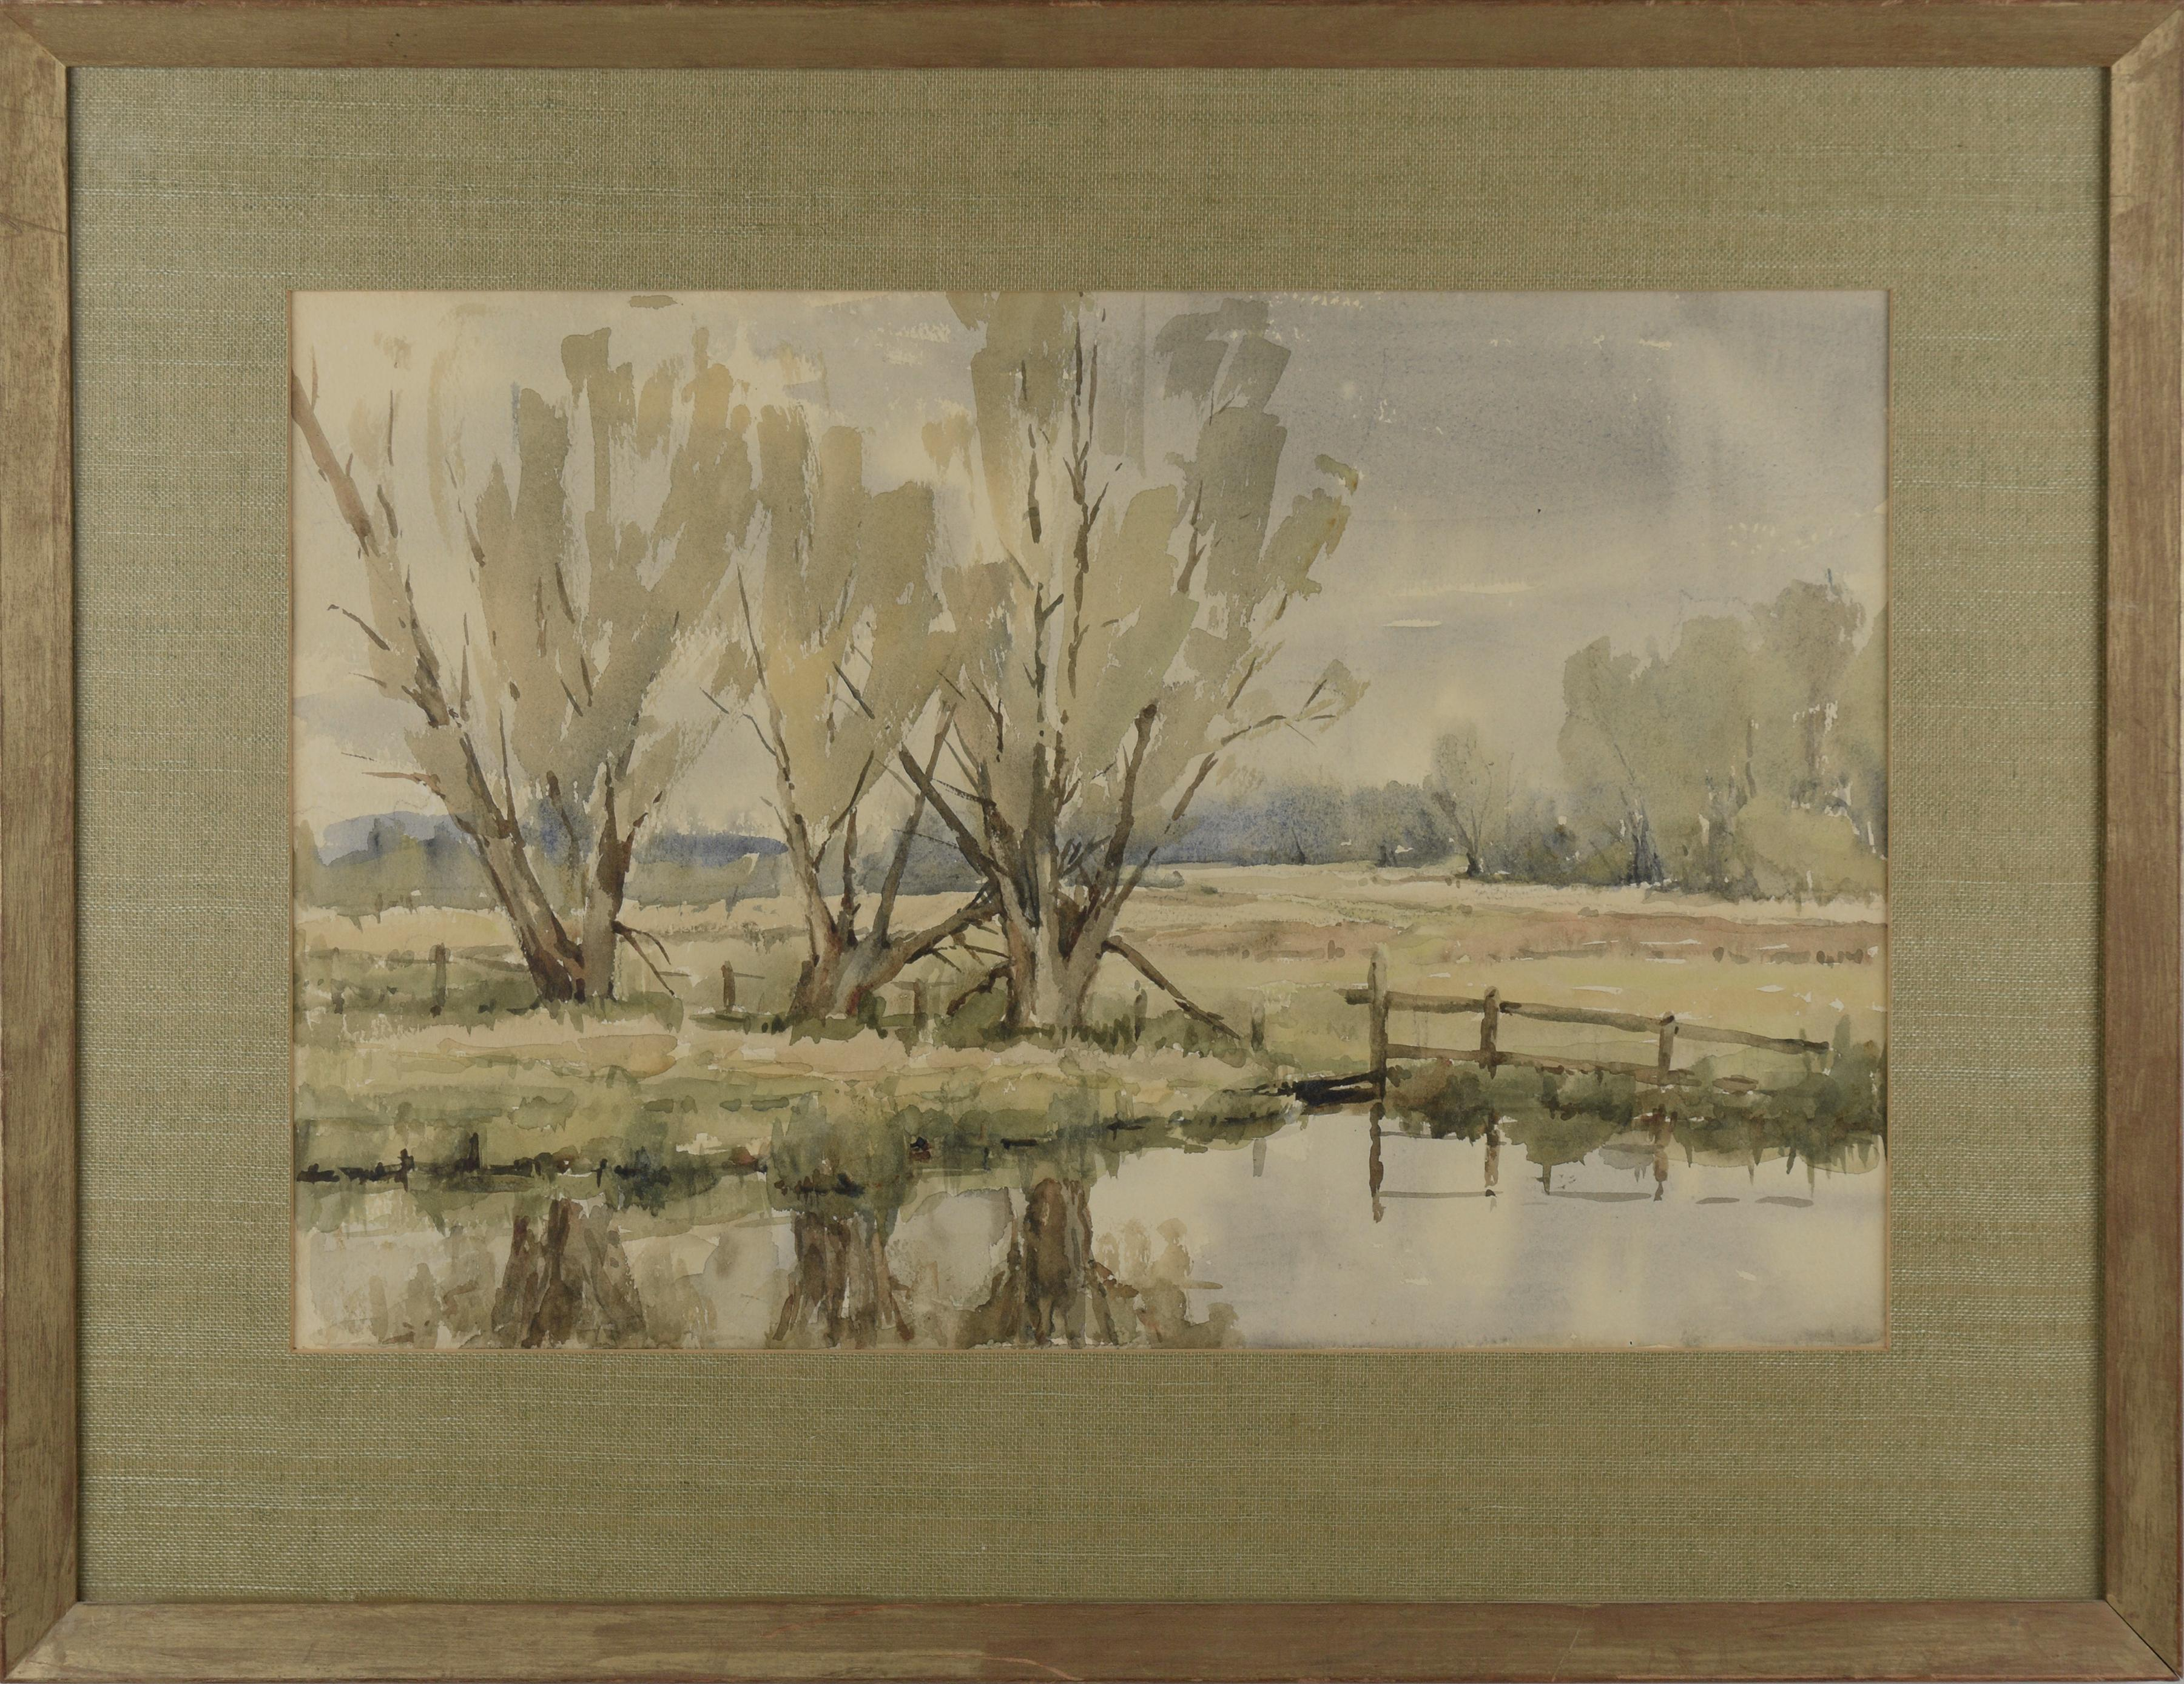 California Wetland Ponds Landscapes (Two Sided)